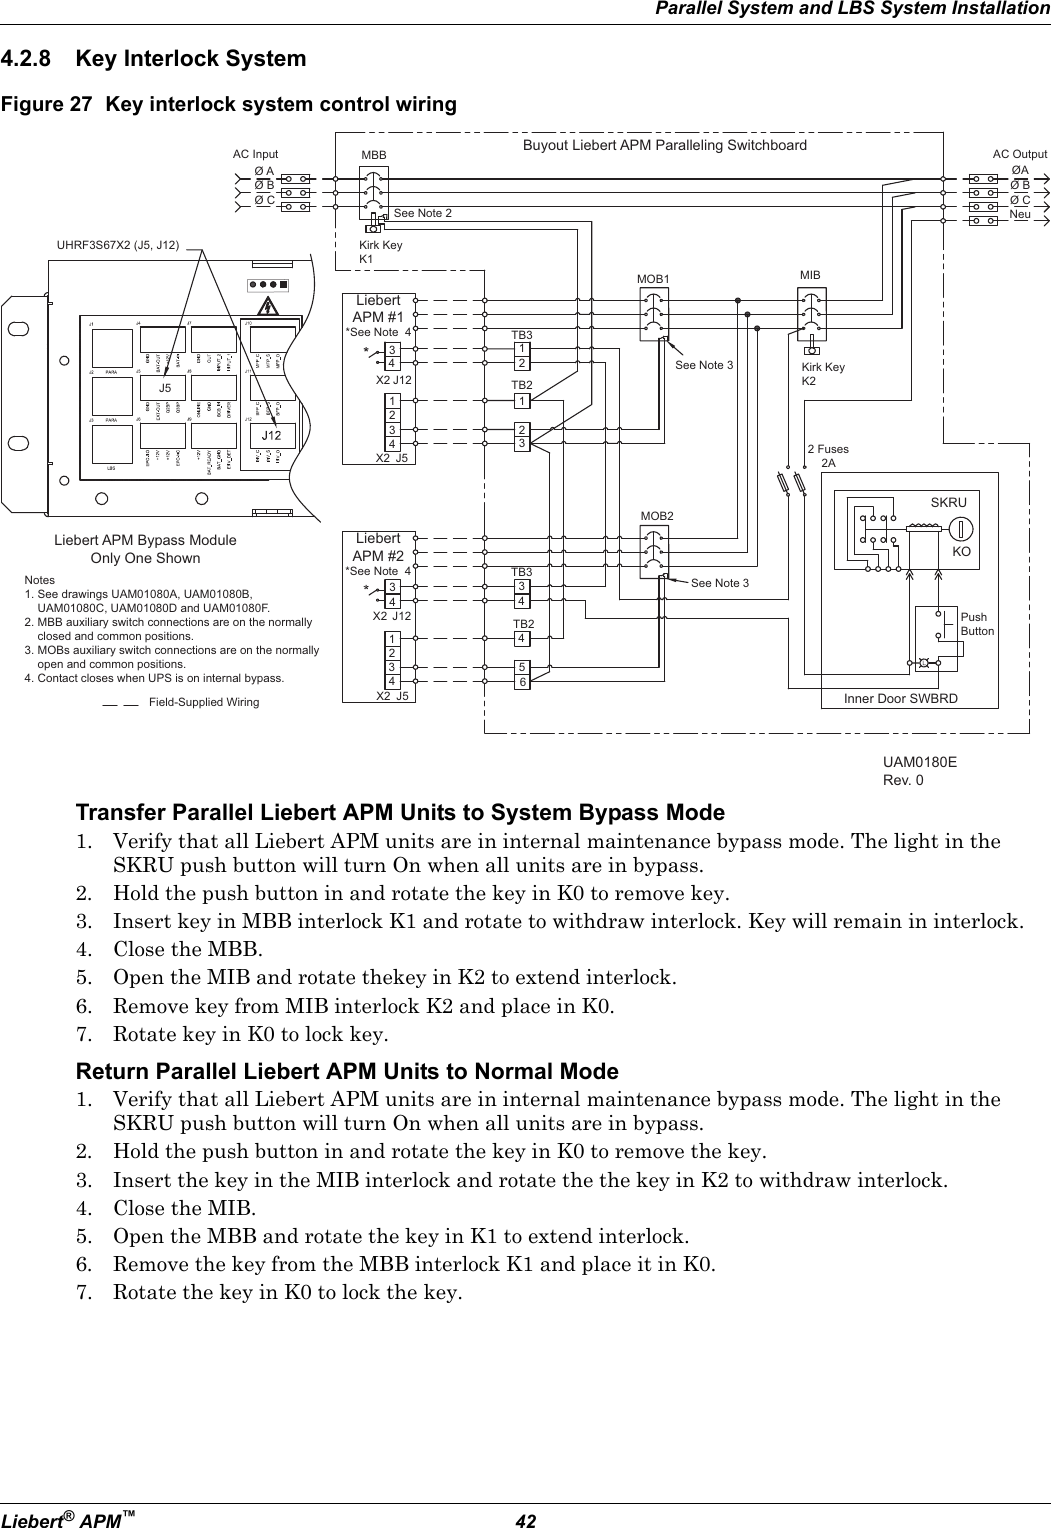 Emerson Ups Wiring Diagram - Electrical Drawing Wiring Diagram •